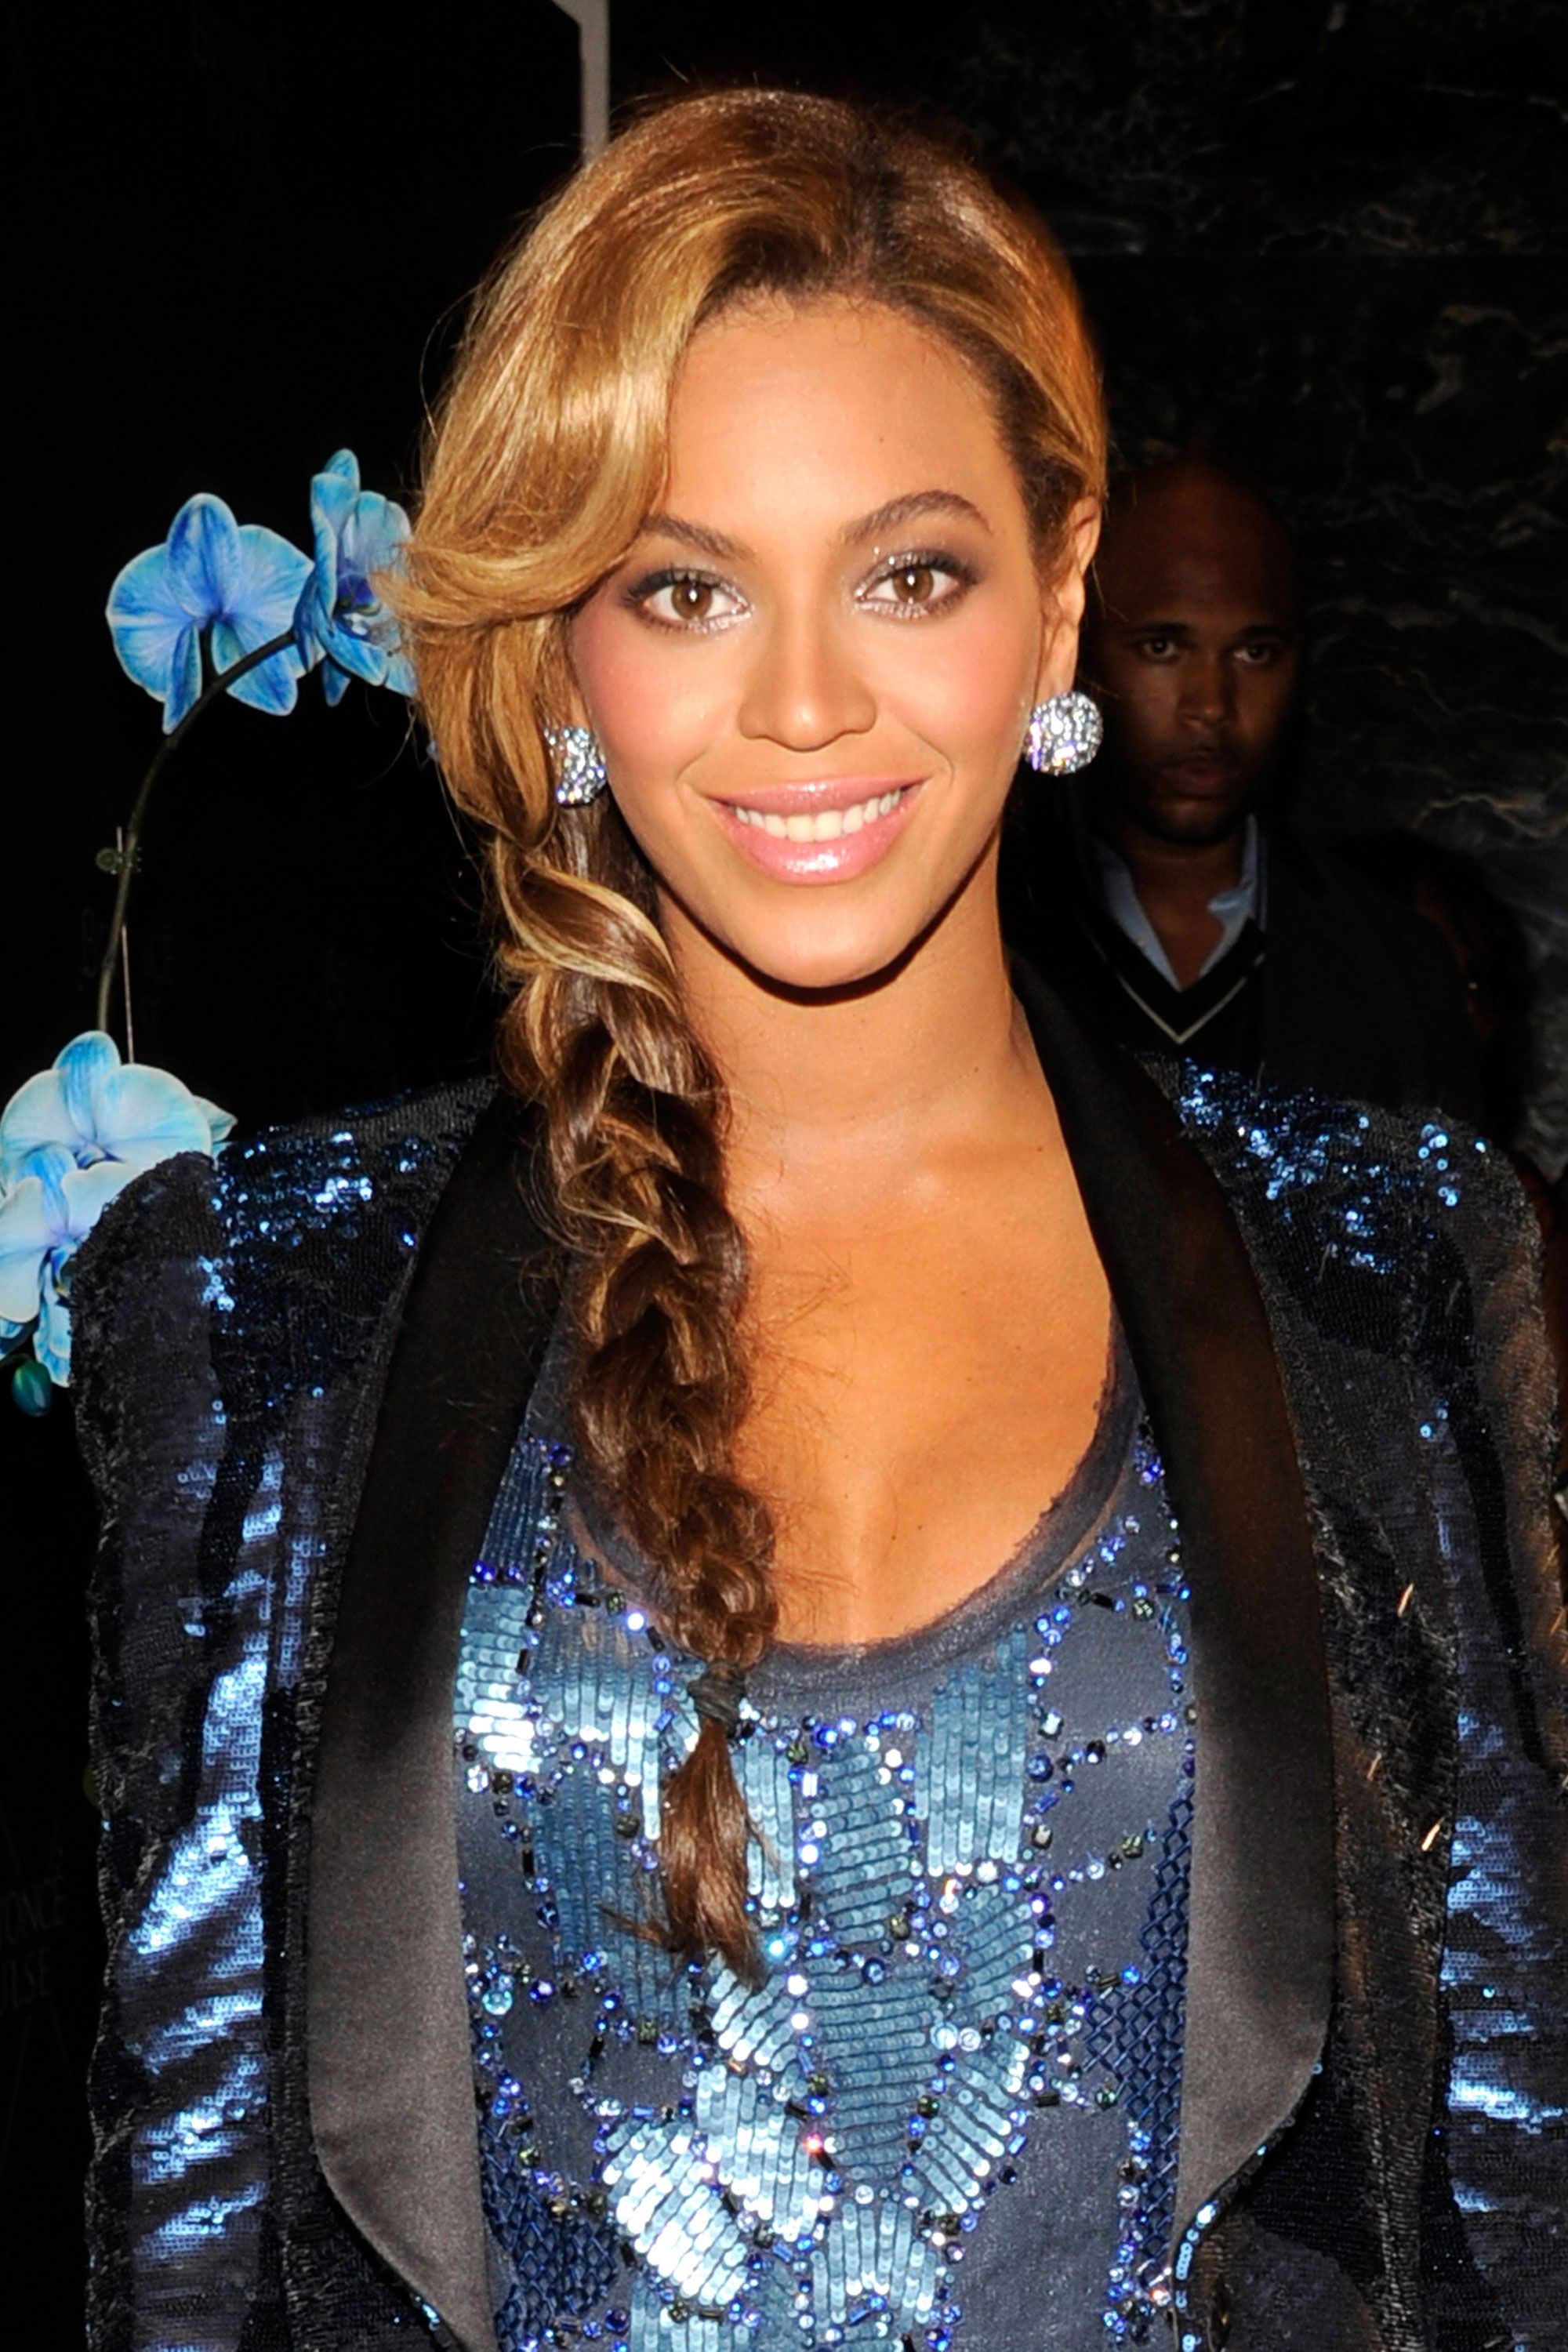 40 beyonce hairstyles - beyonce's real hair, long hair and short